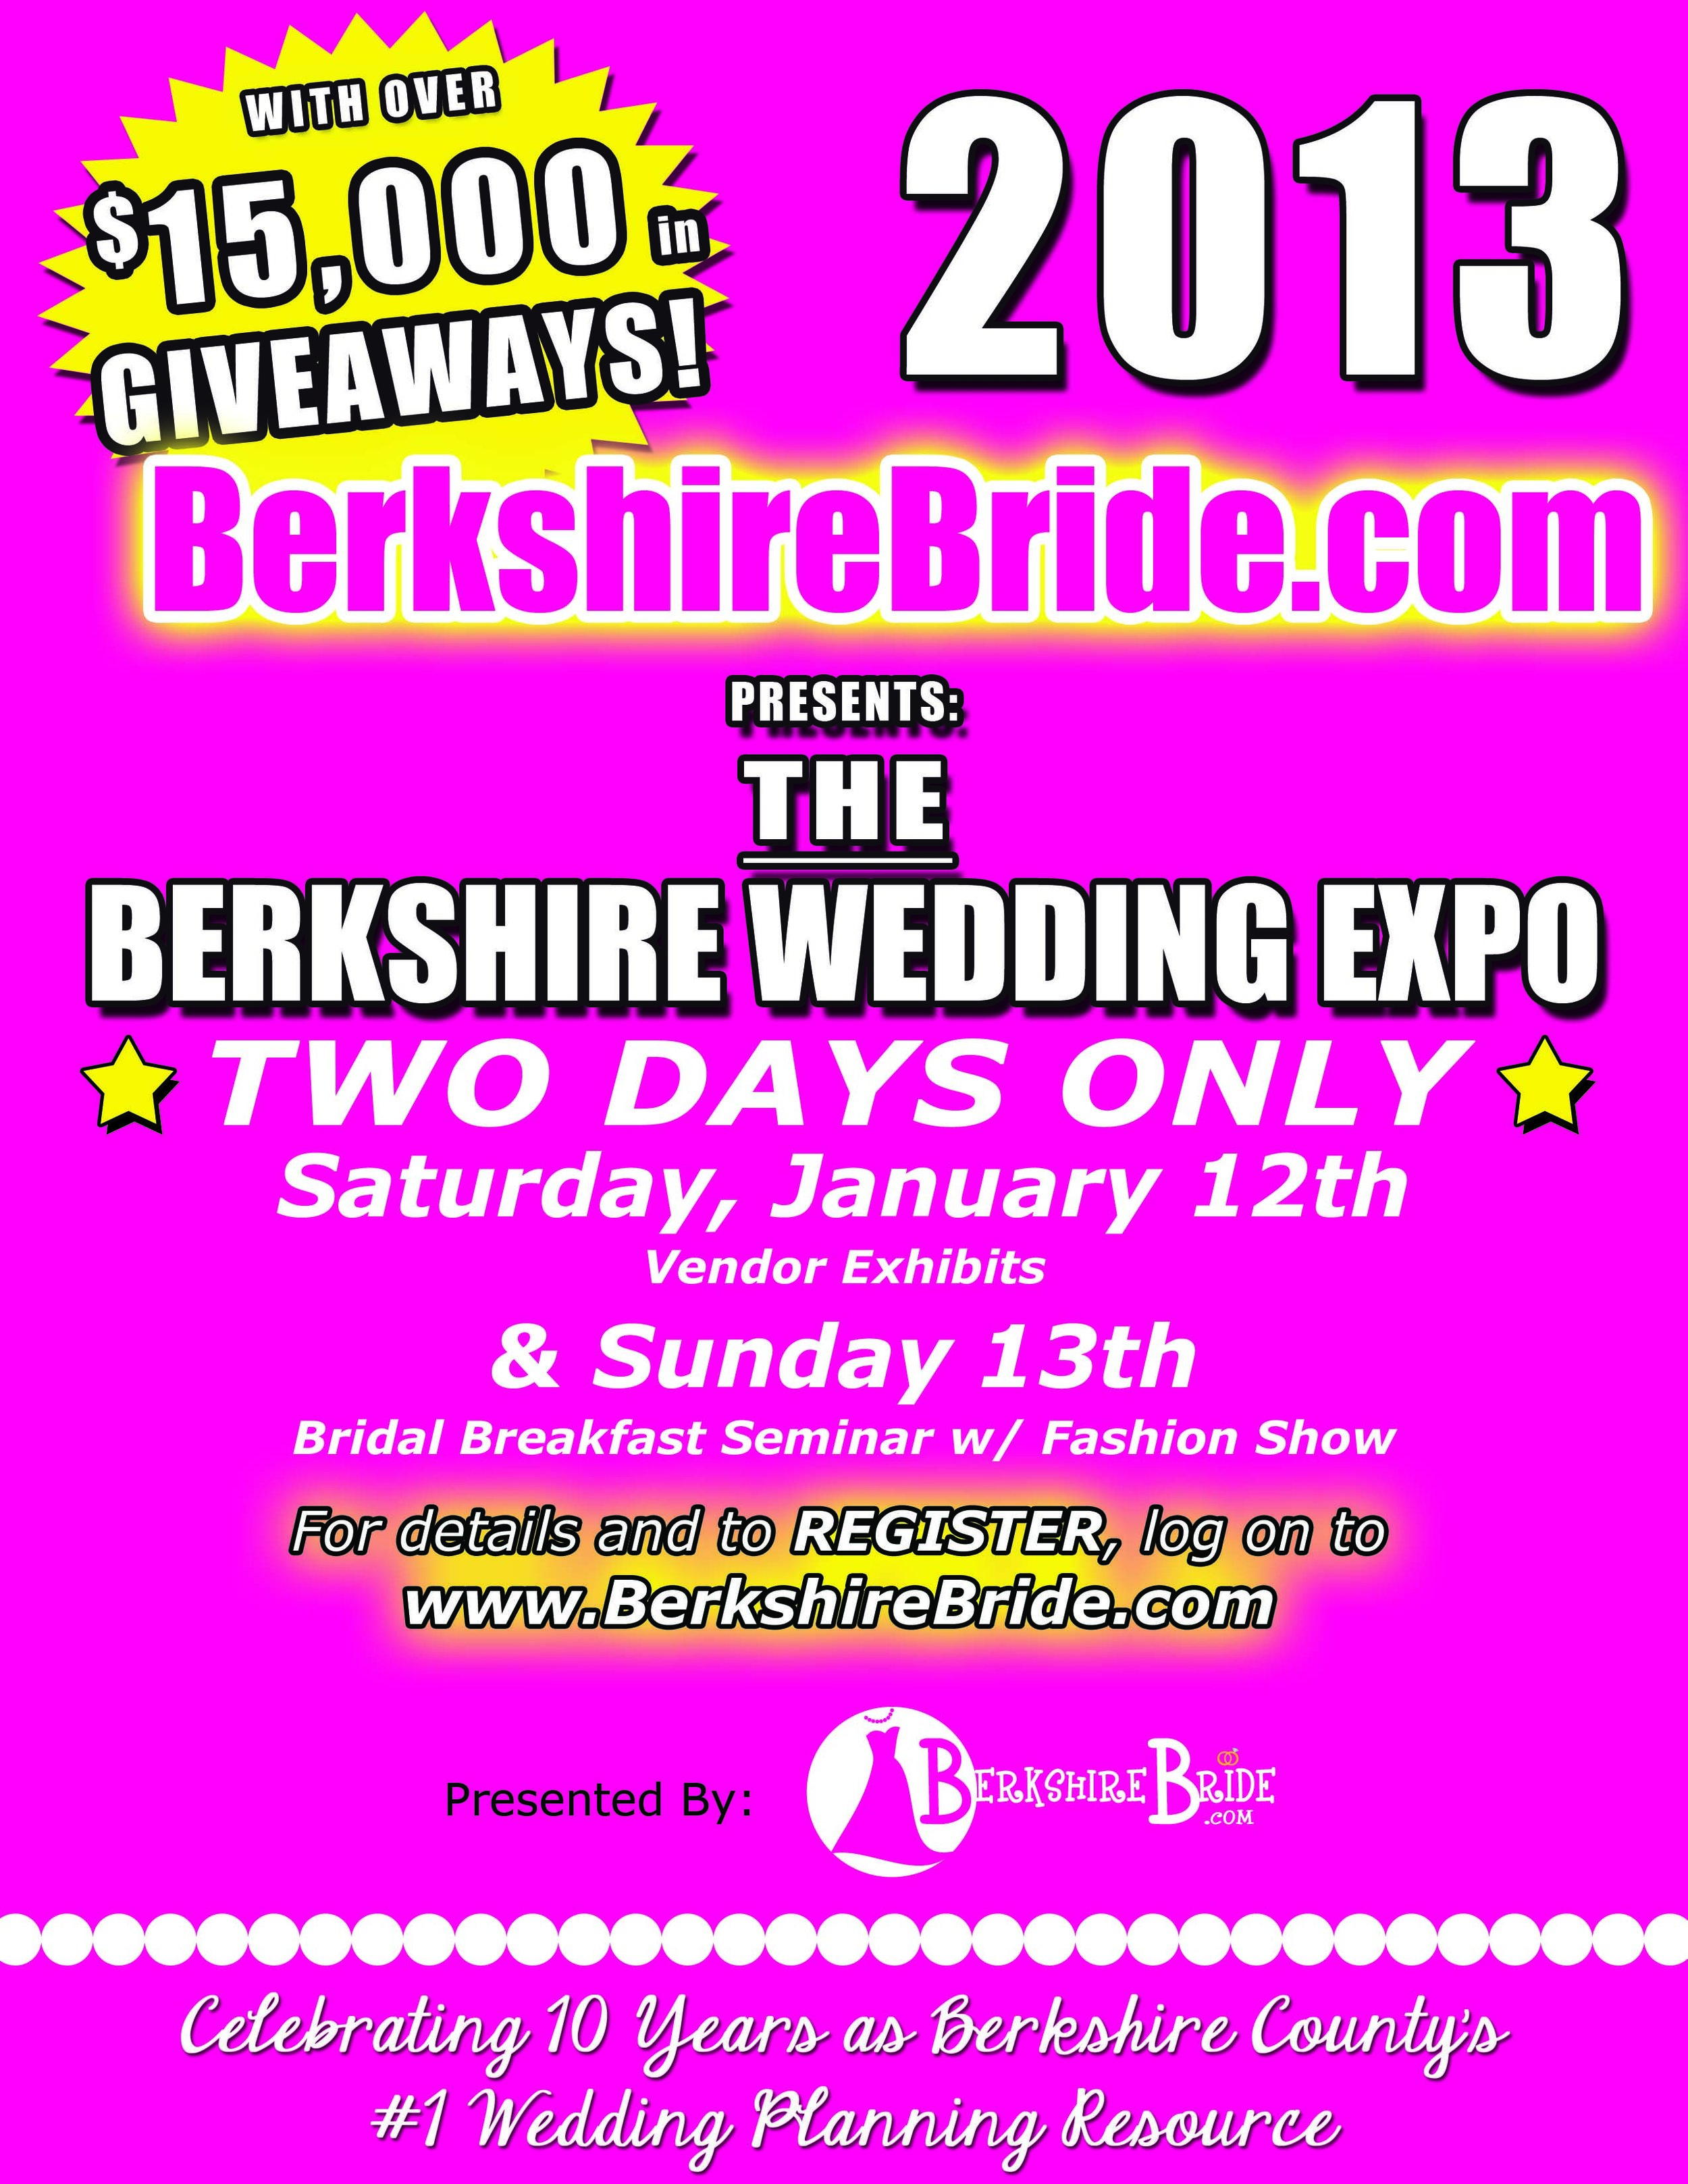 Graphic Design Berkshire Bride